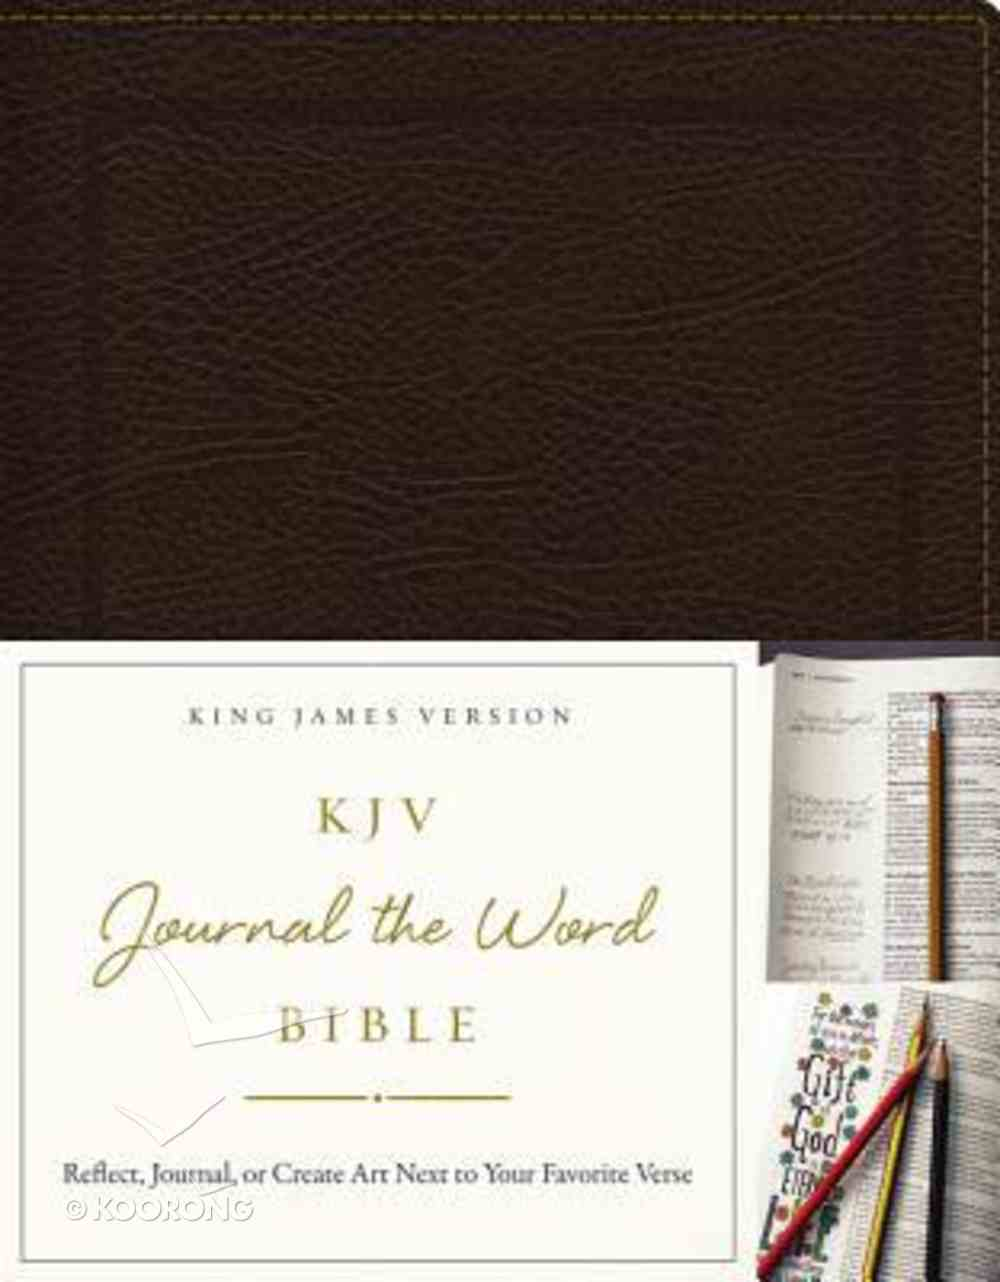 KJV Journal the Word Bible Brown (Red Letter Edition) Bonded Leather